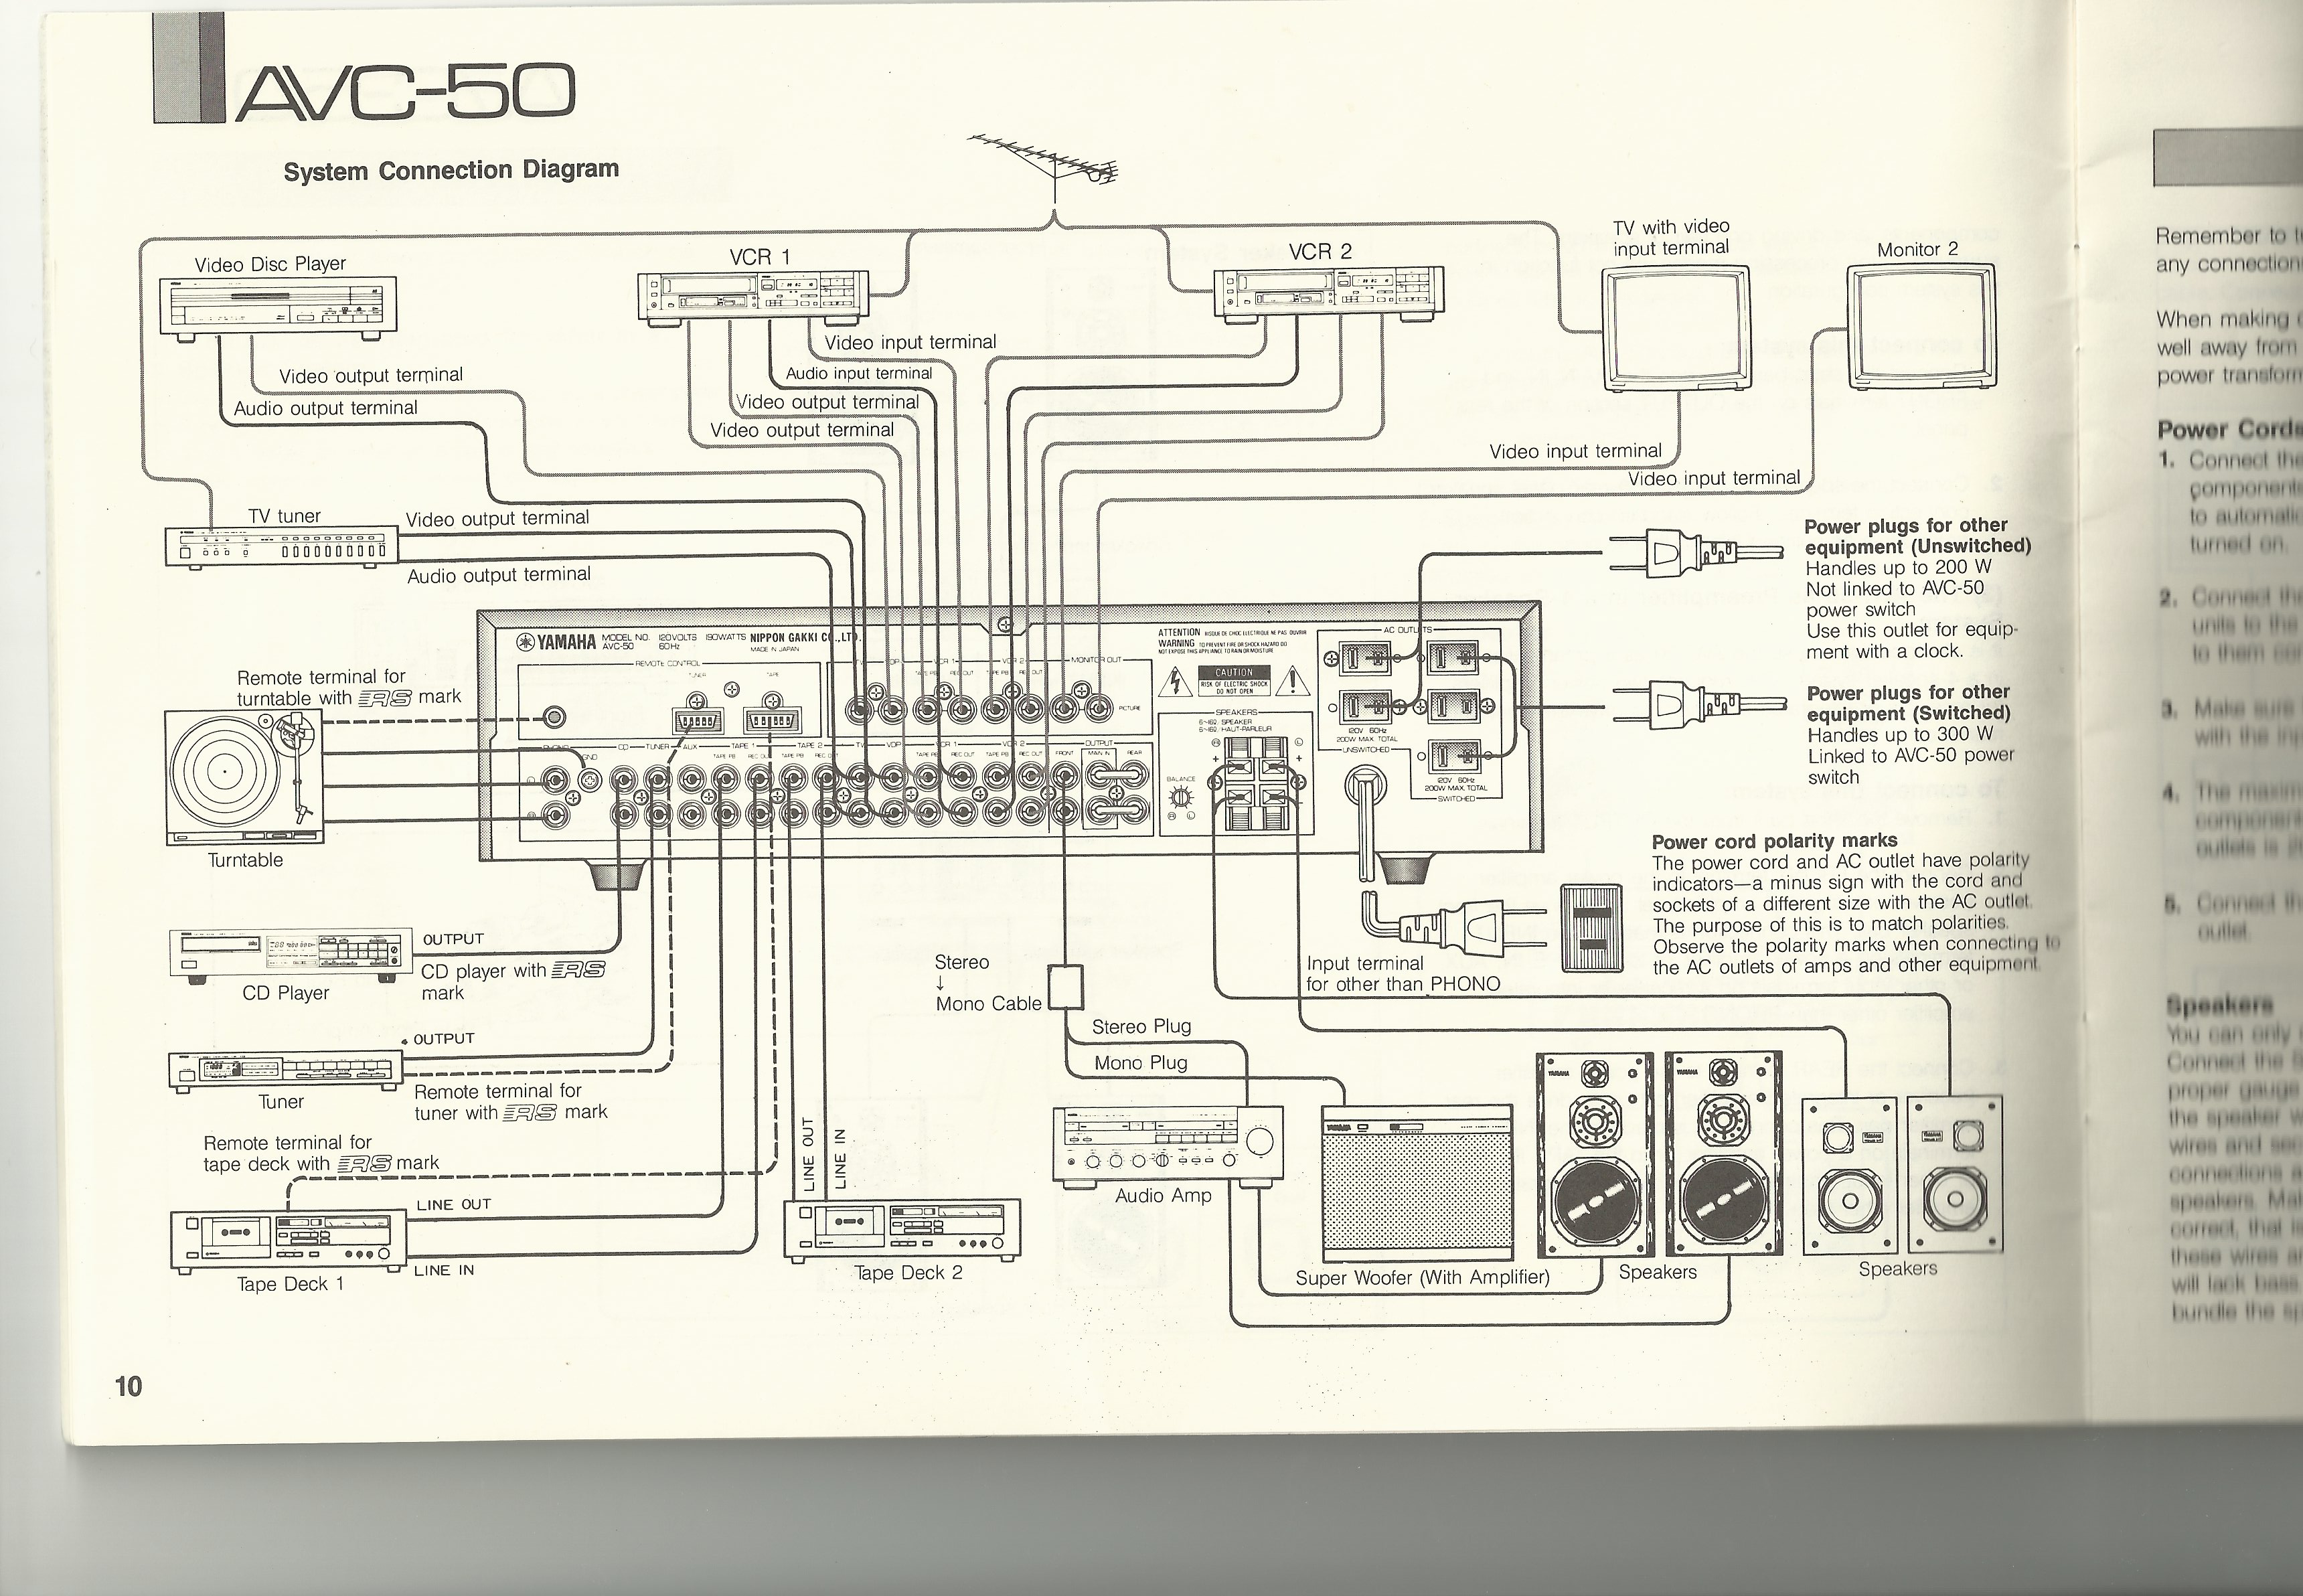 Avc 50 Connection Diagram Microcosmologist Speakerconnectiondiagramjpg A Vhs Dubbers Dream And Stereo Pre Amp Sleeper The Yamaha